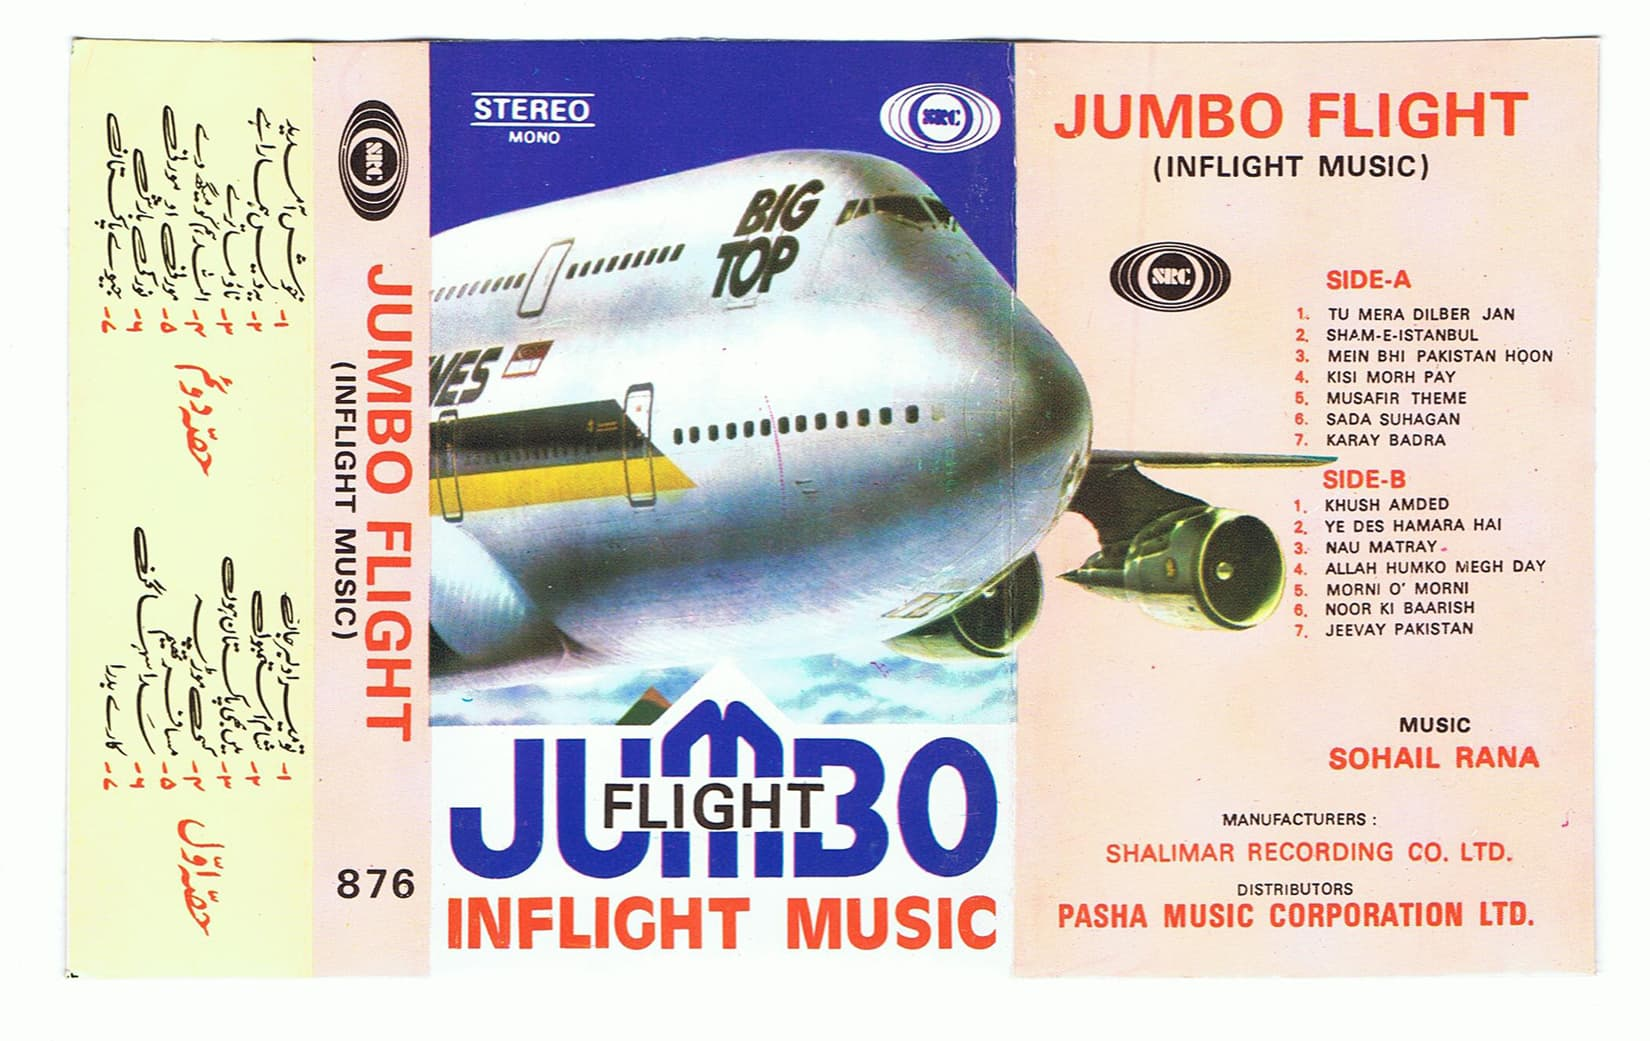 Jumbo Flight by Shalimar